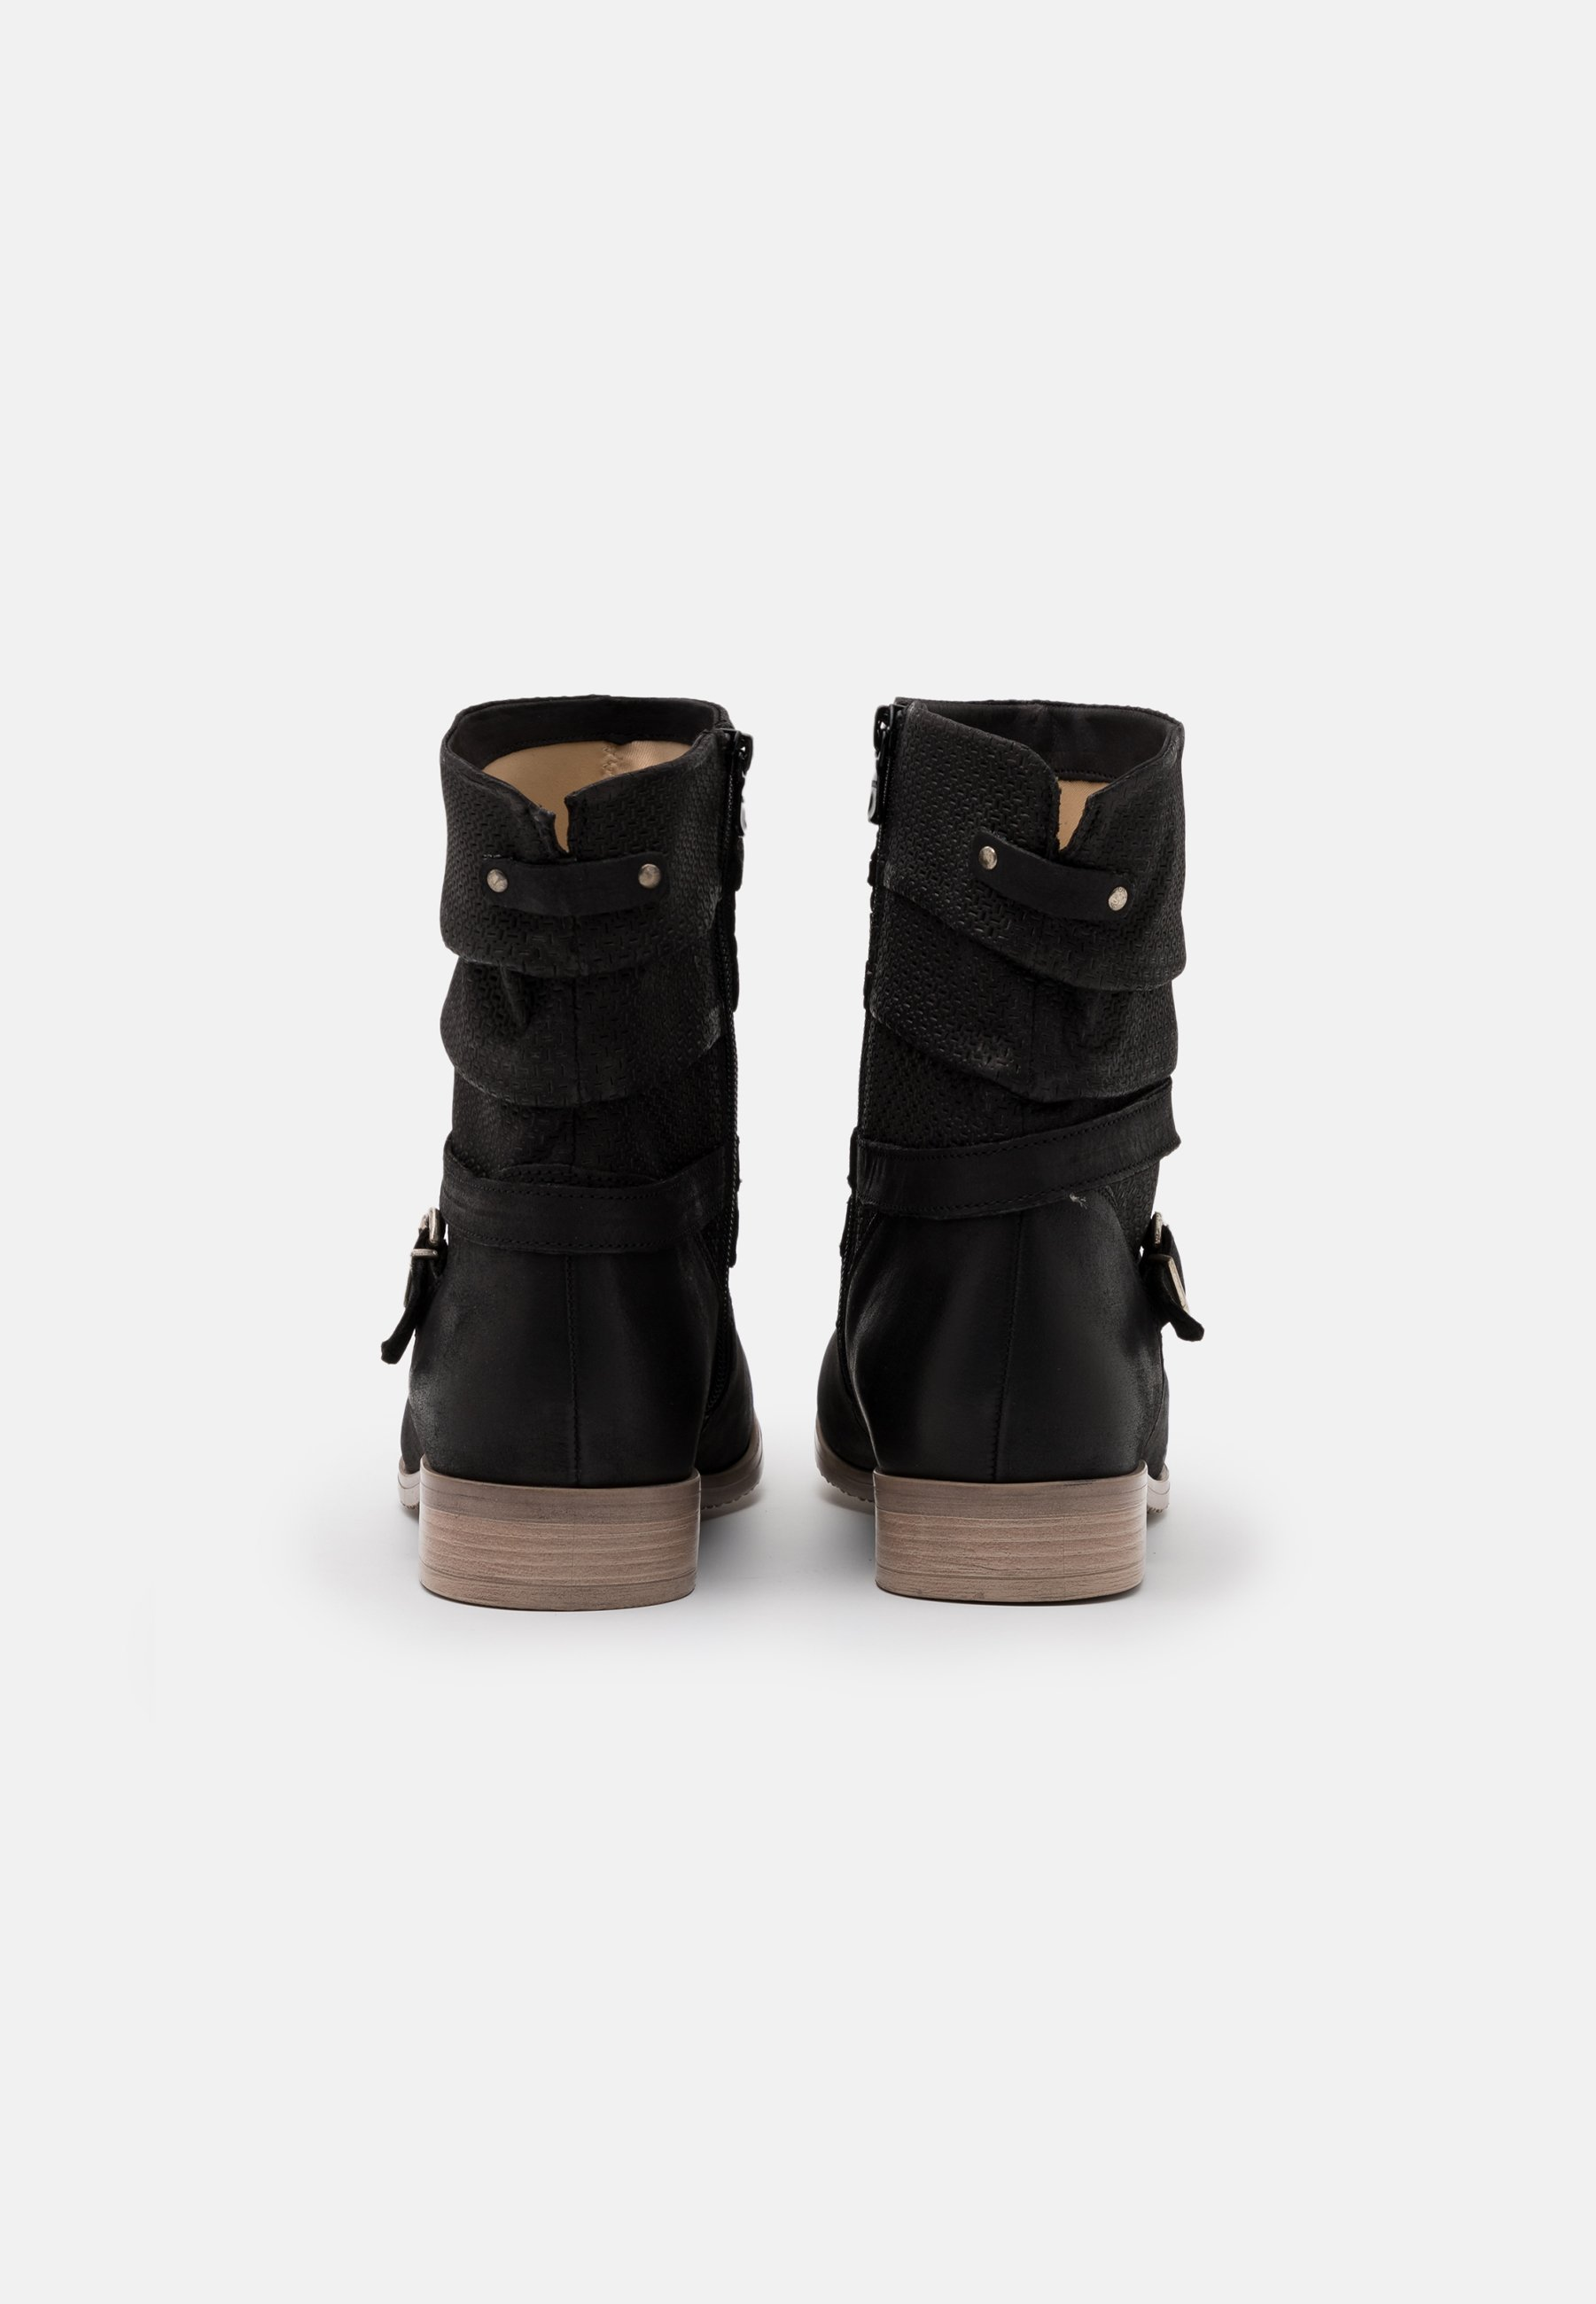 Latest Discount New And Fashion Women's Shoes Anna Field LEATHER Cowboy/biker ankle boot black Ev7bWI3ca Nq8CWMYud